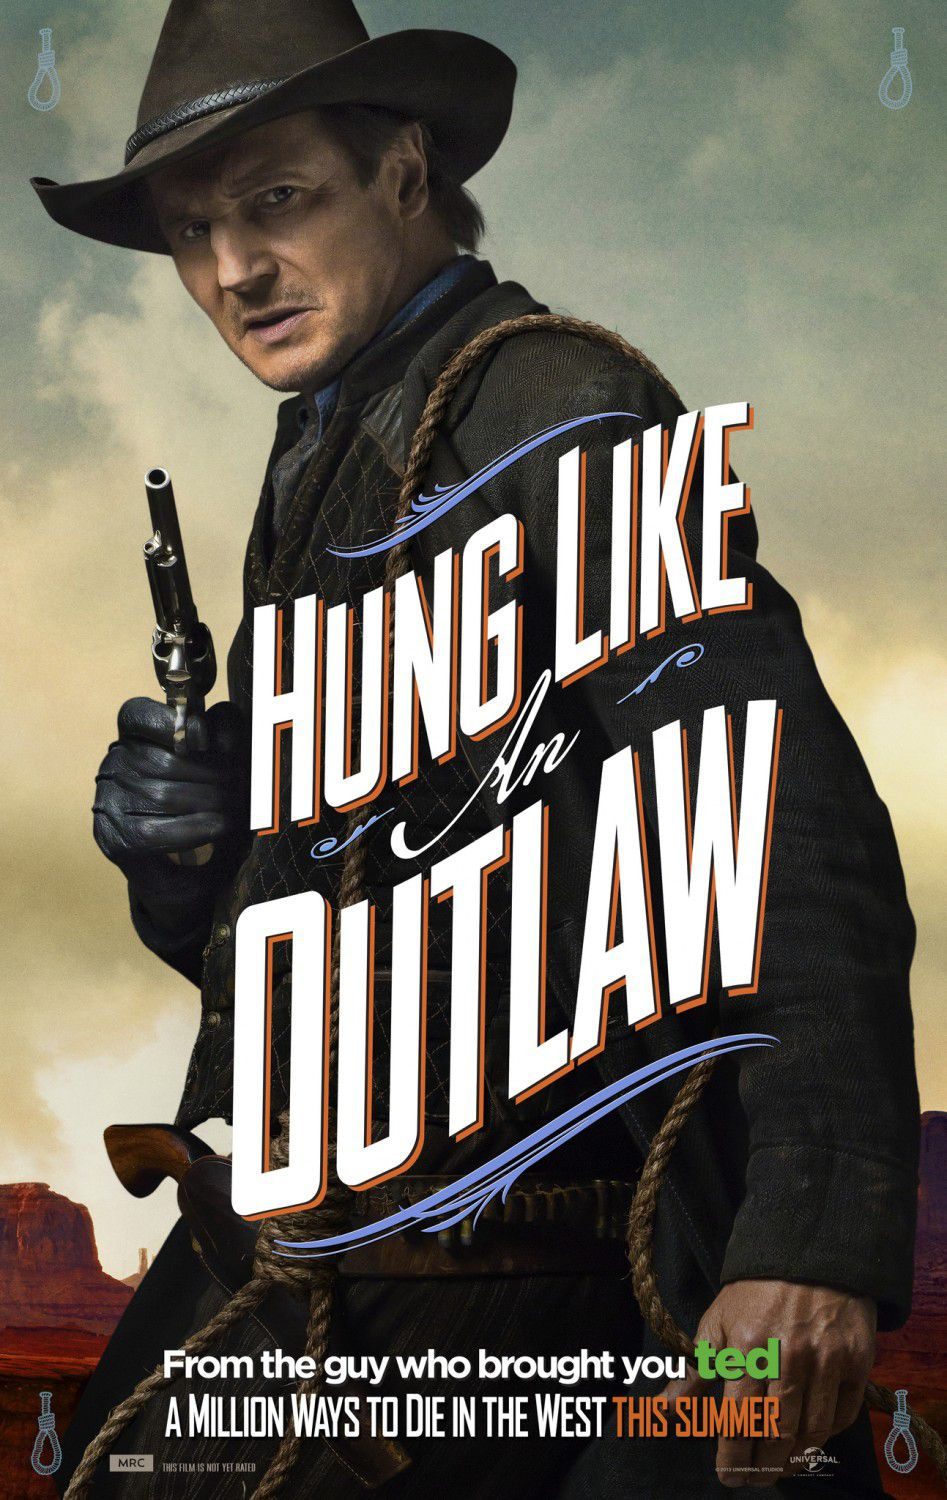 Million ways to Die in the West - Un milione di modi per morire nel West - Hung like Outlaw - Liam Neeson